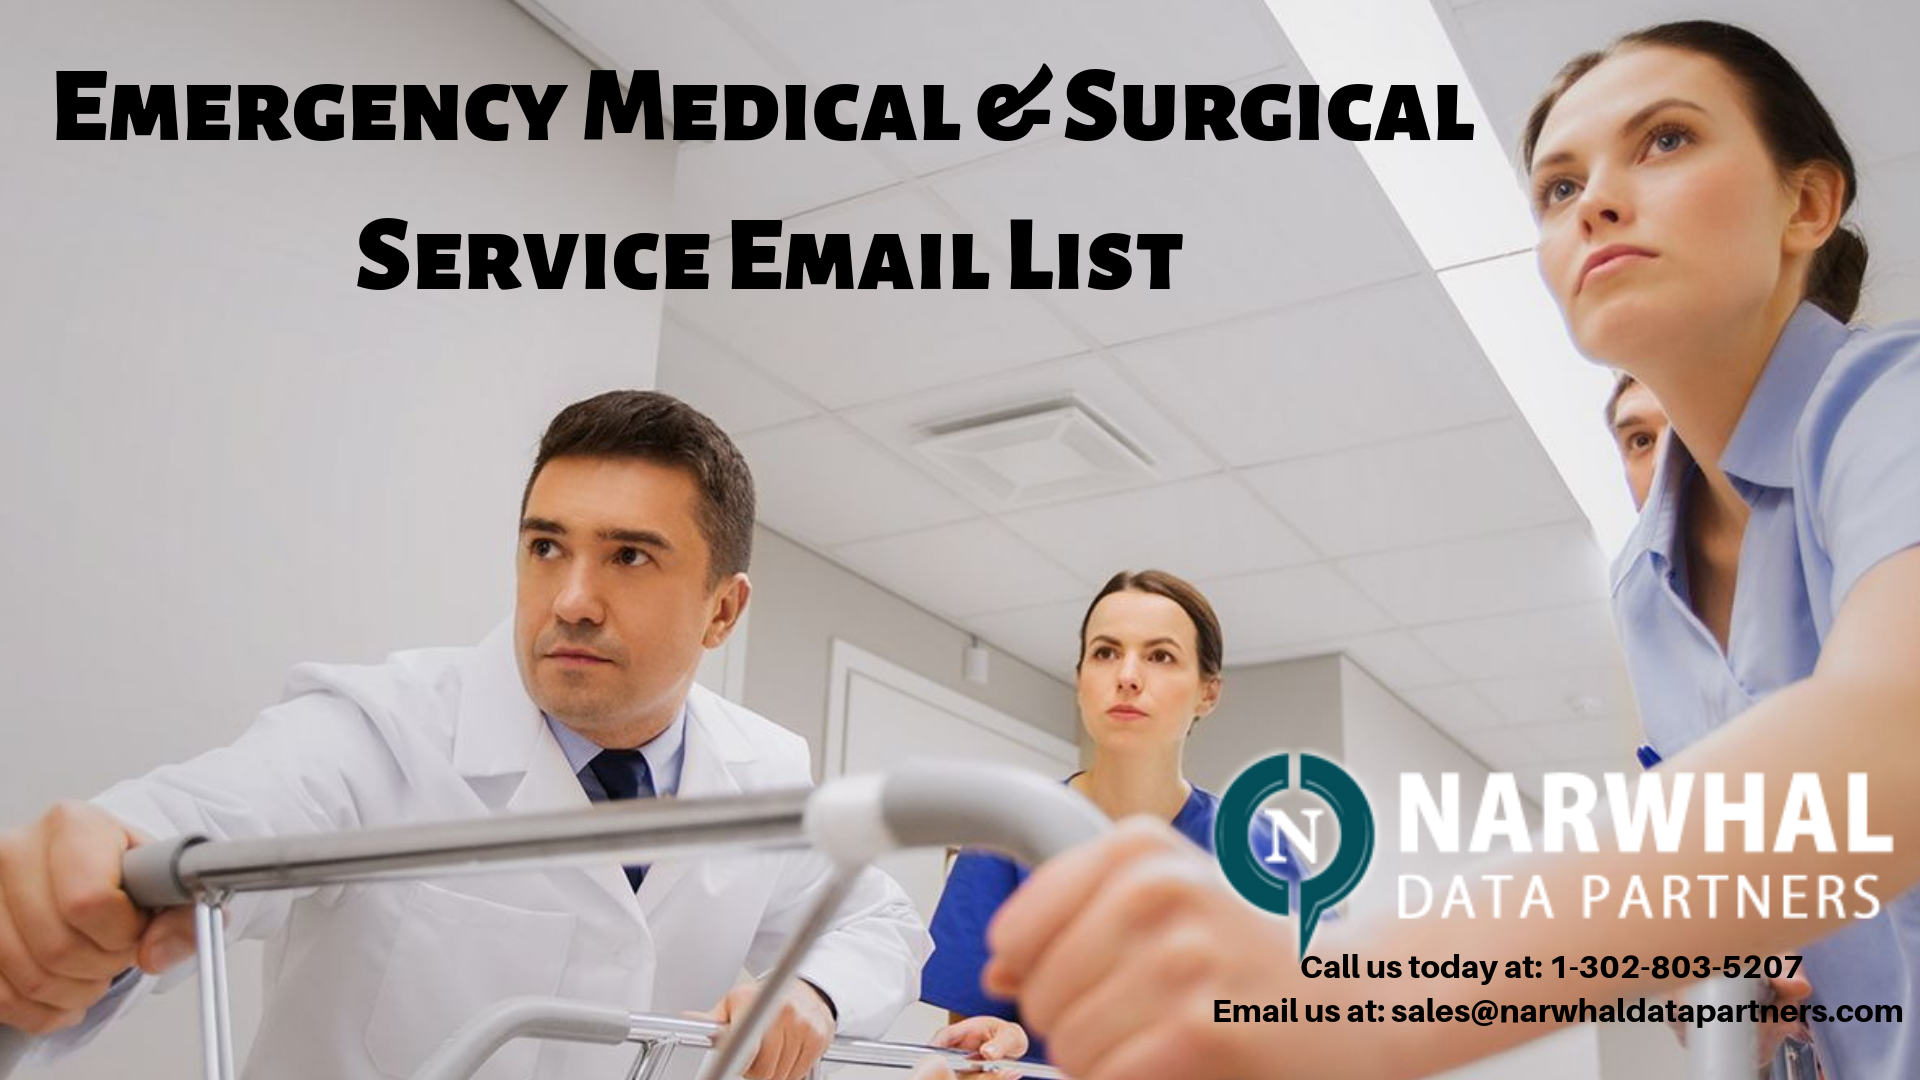 http://narwhaldatapartners.com/emergency-medical-and-surgical-service-email-list.html